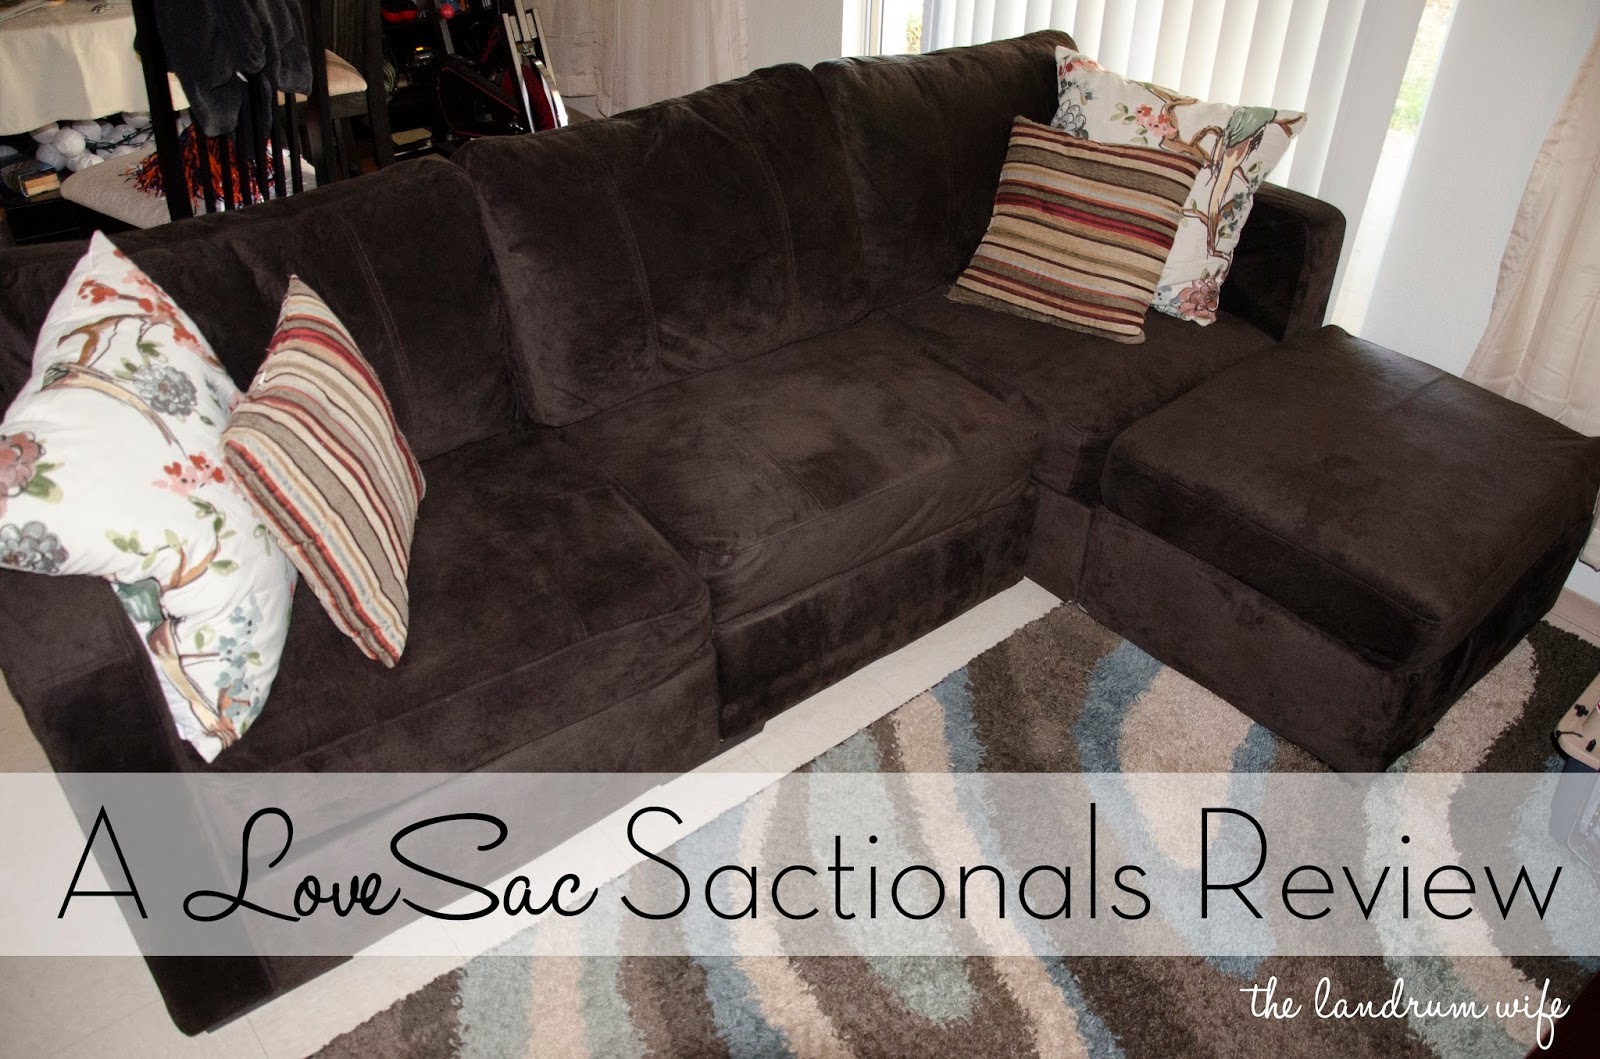 lovesac a review - Lovesac Sofa